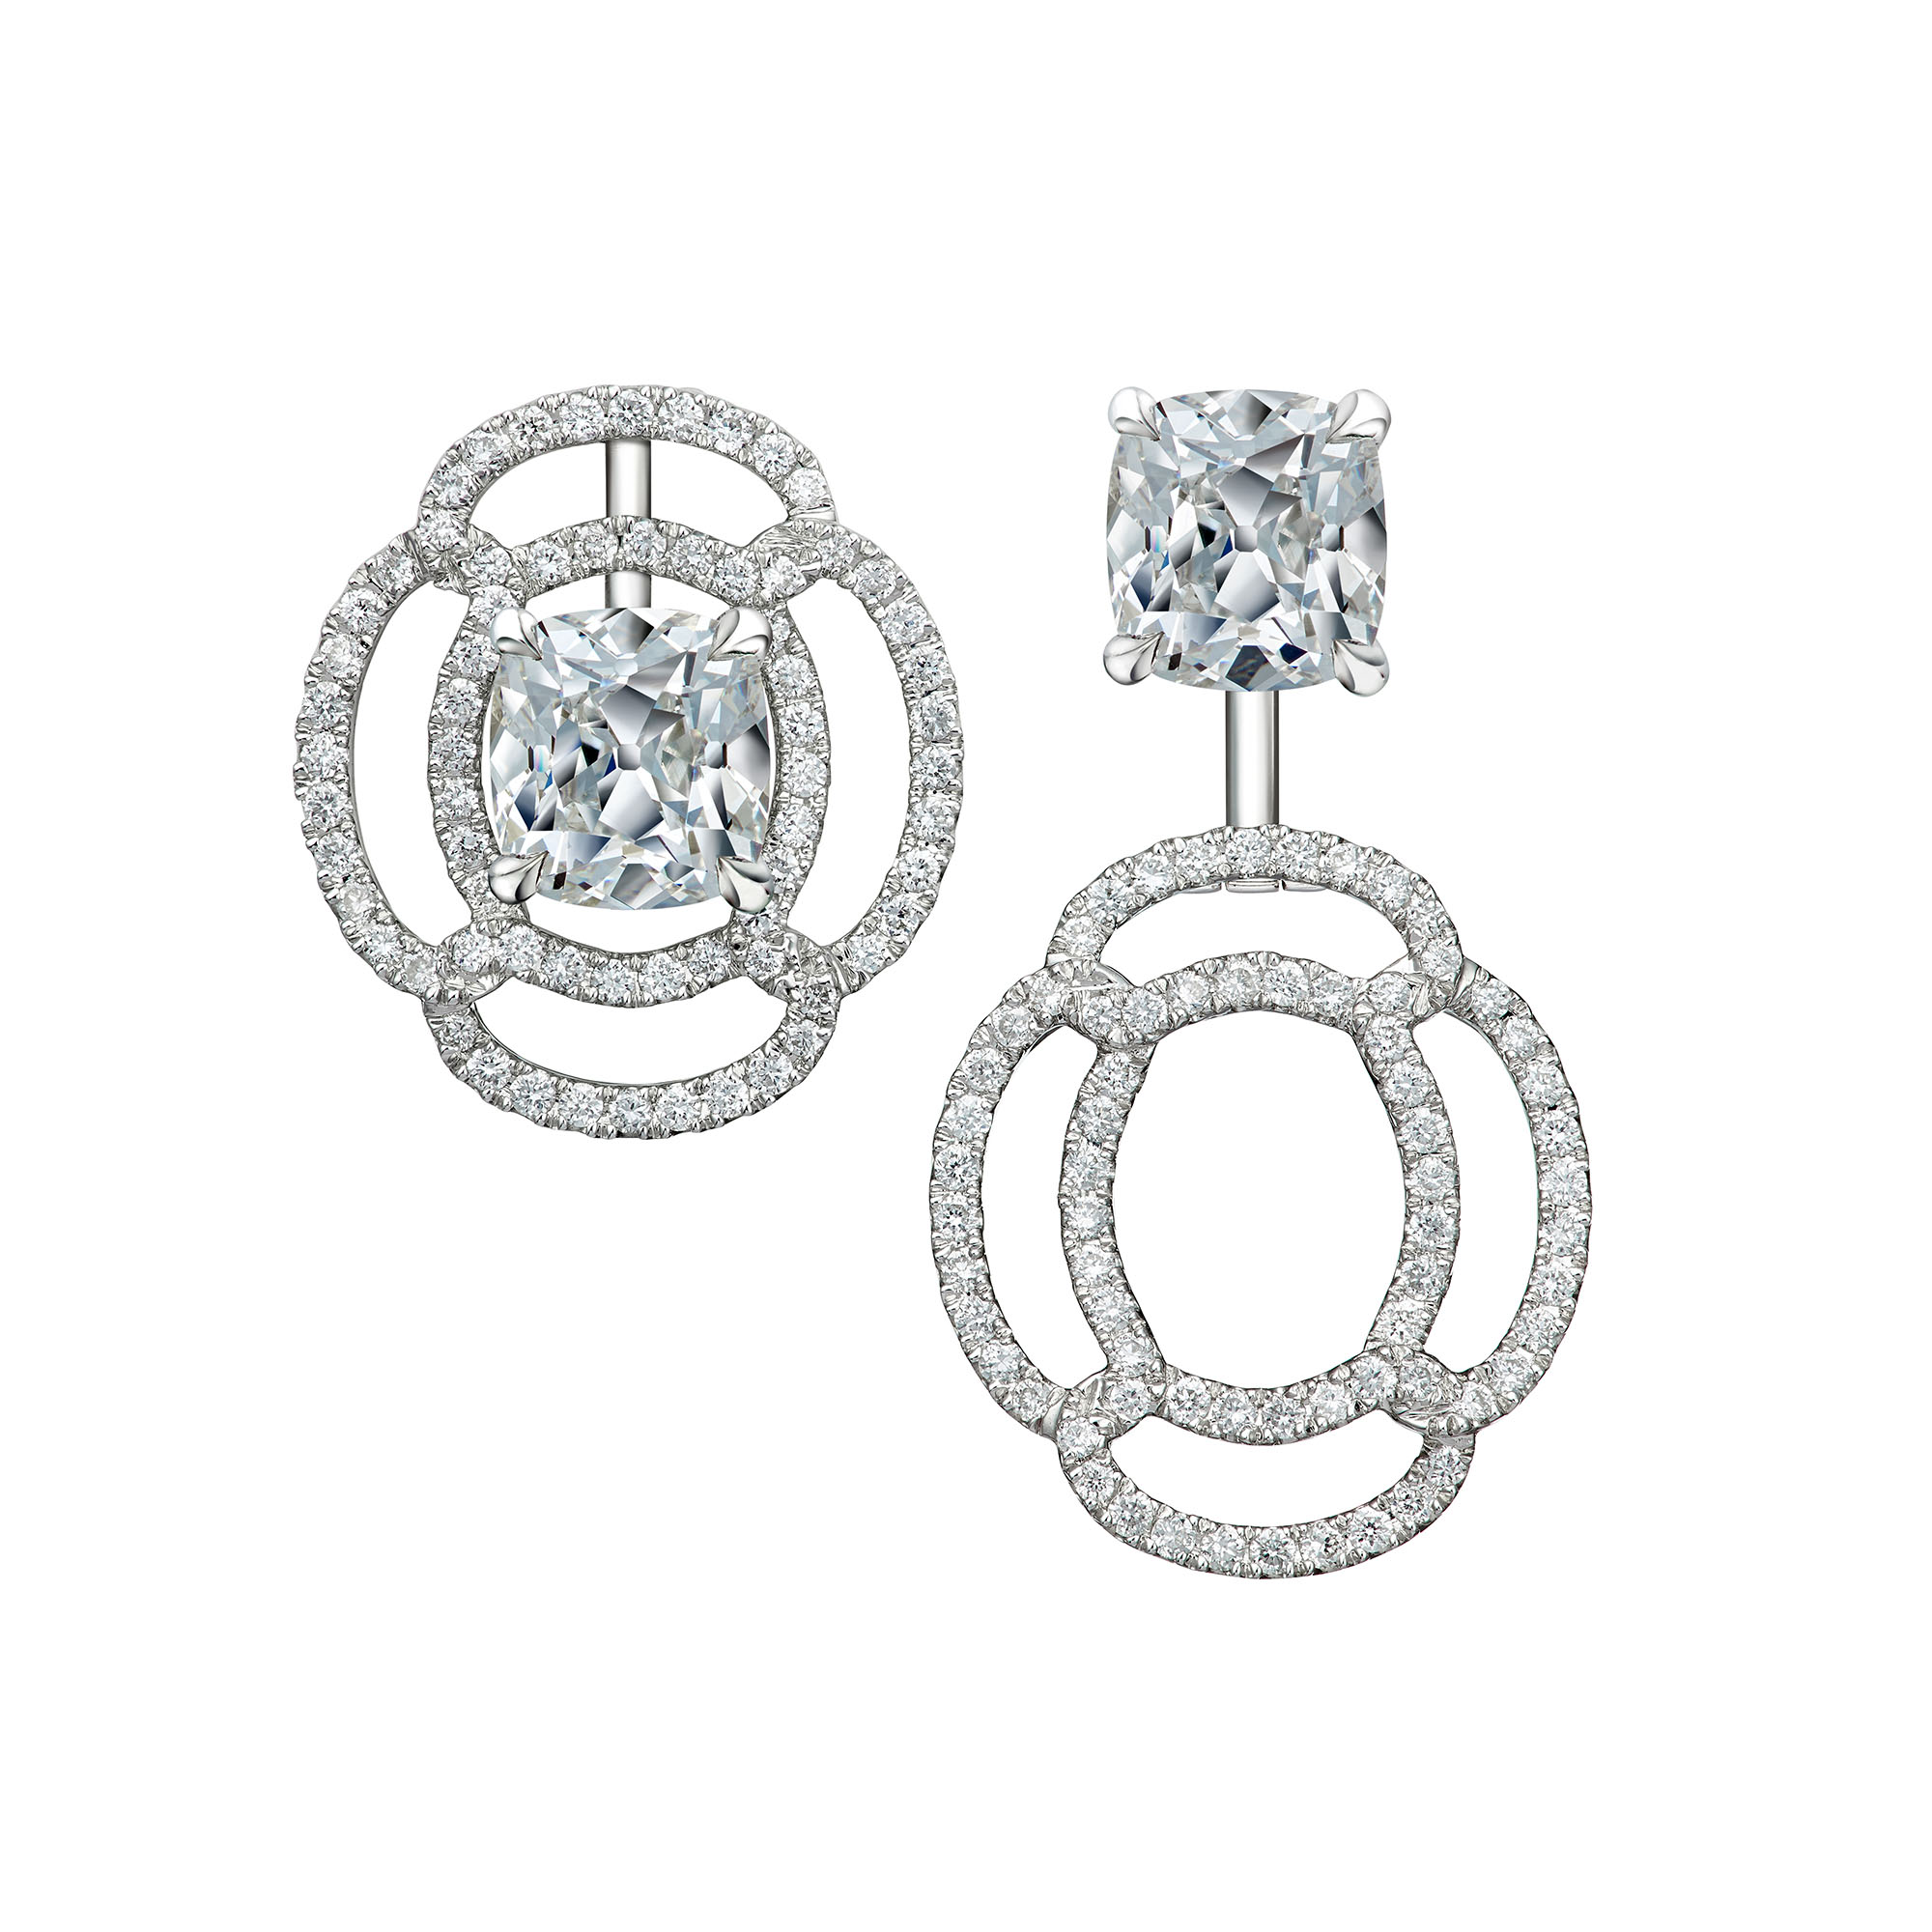 Venetian Knot Two Way Earrings